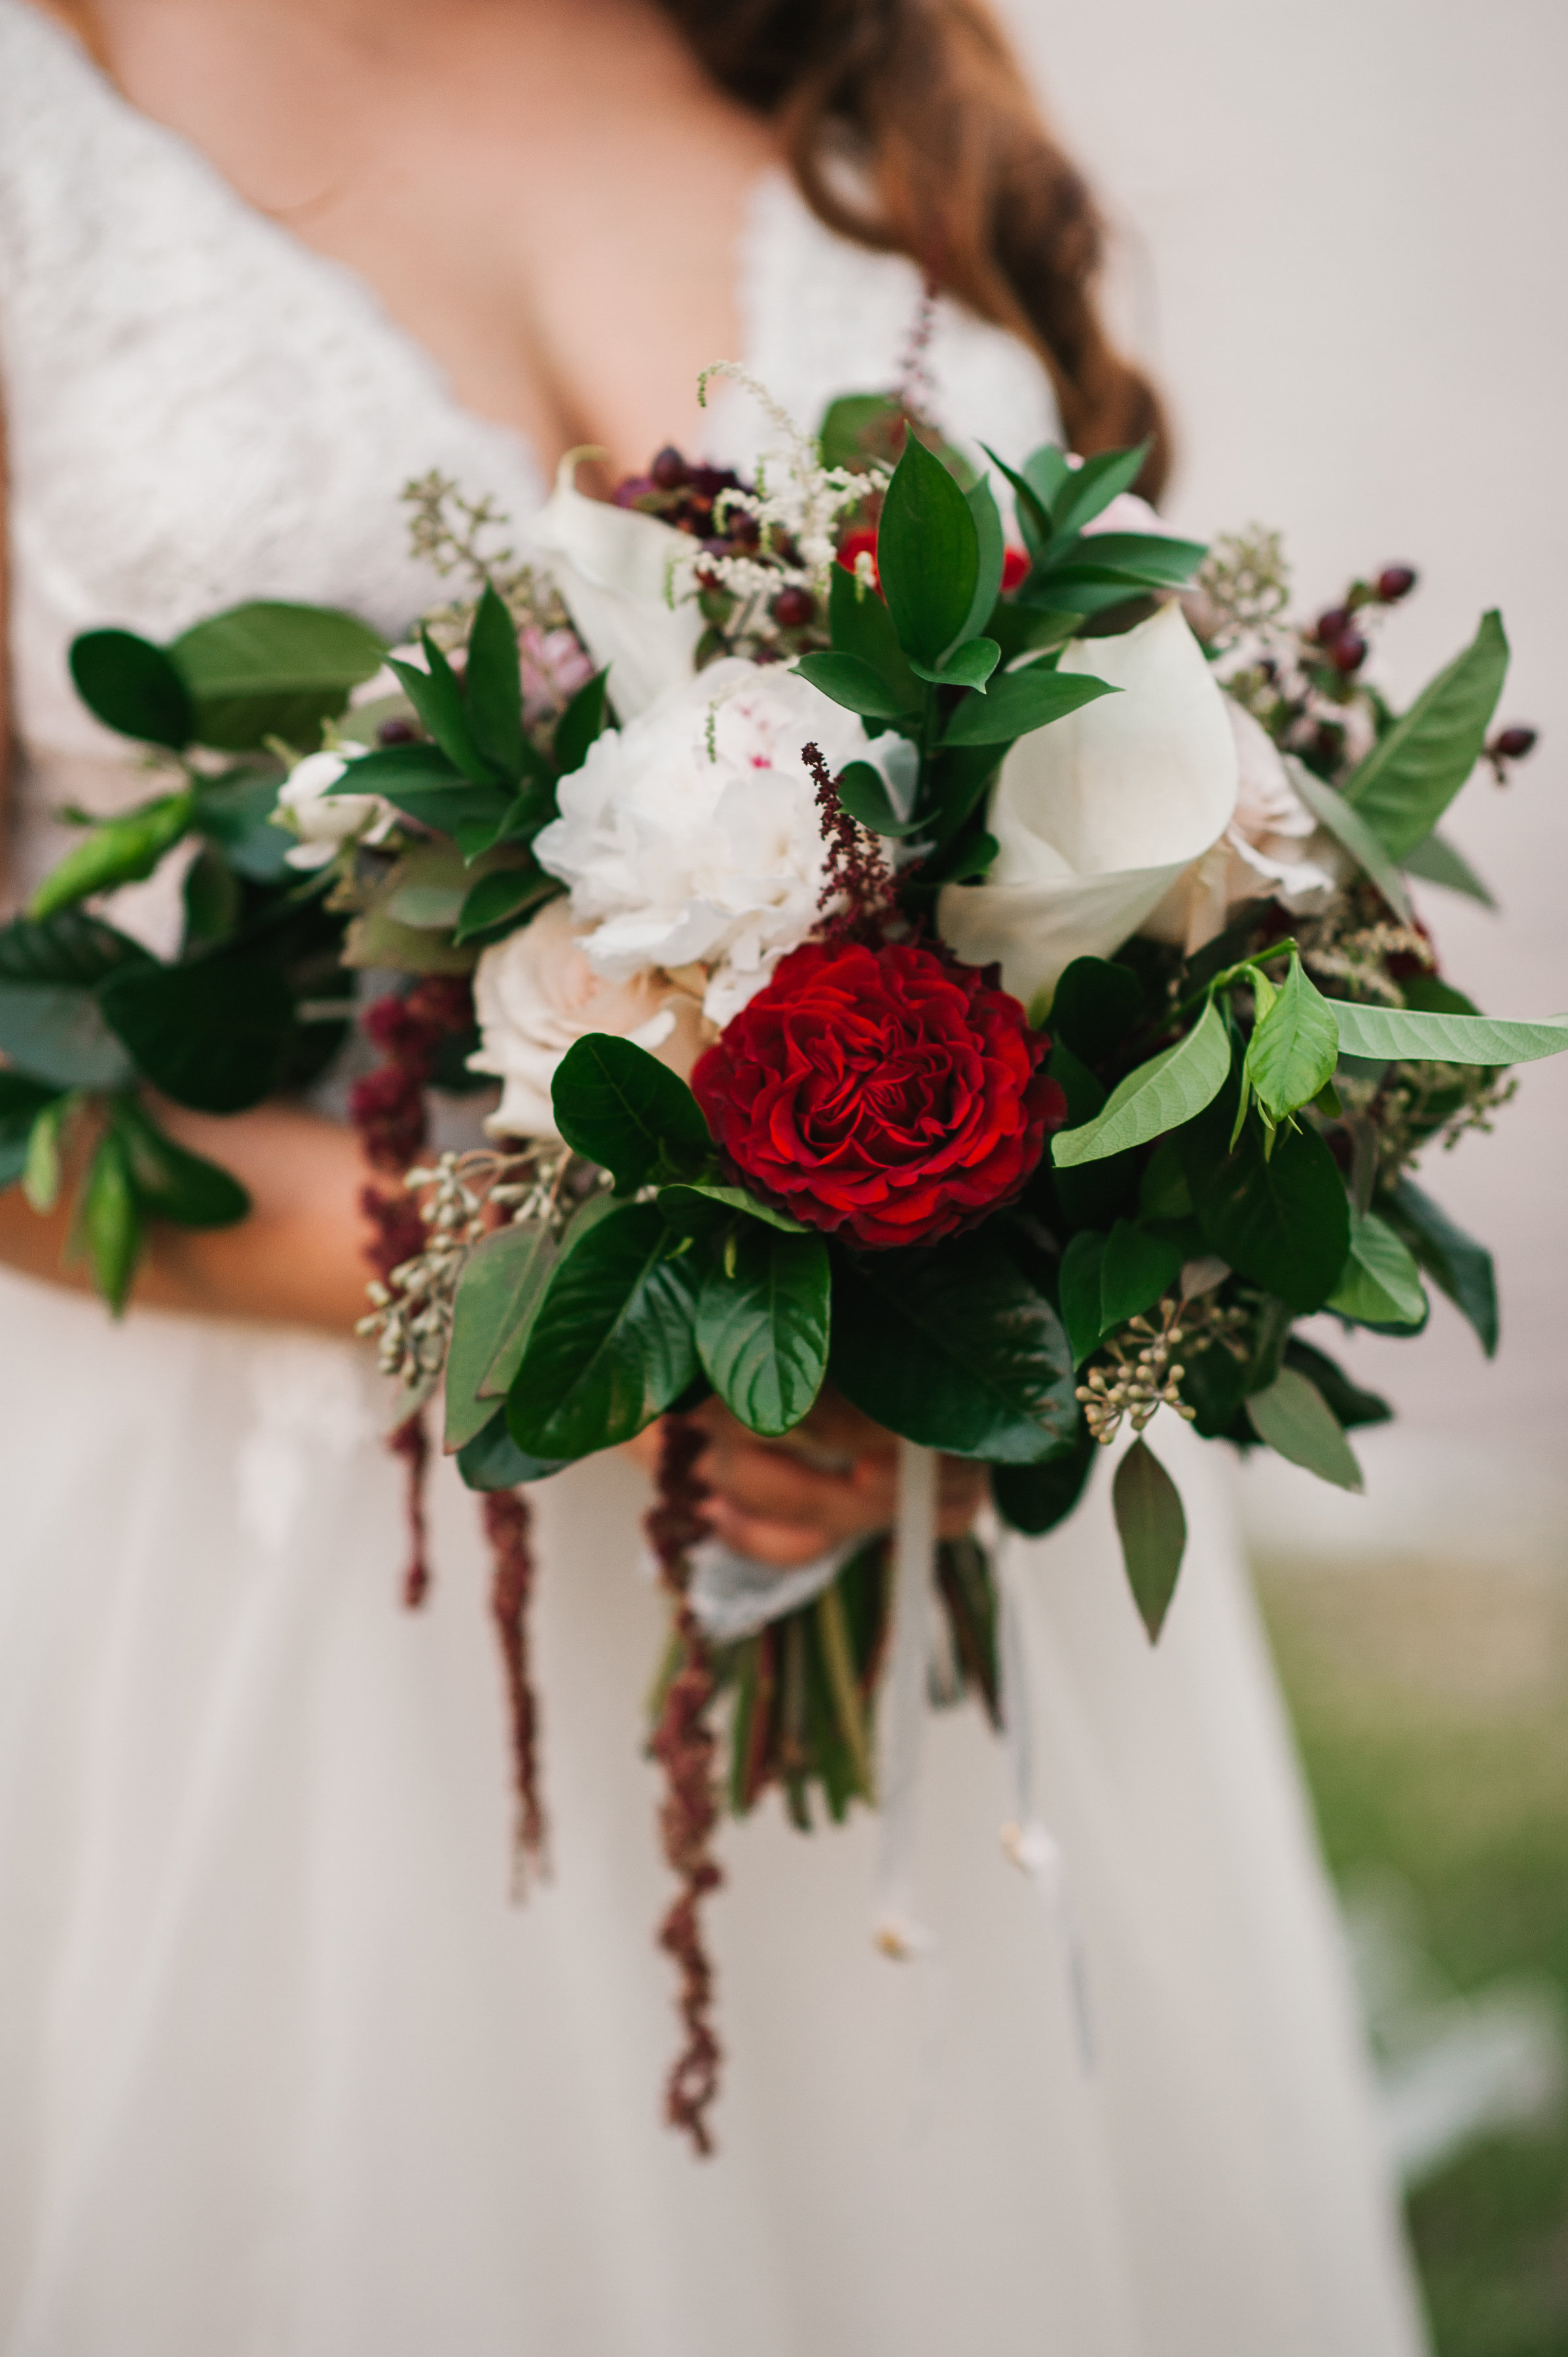 The bride's organic dripping bouquet looks stunning, and with dark reds throughout, pops against her ivory dress.